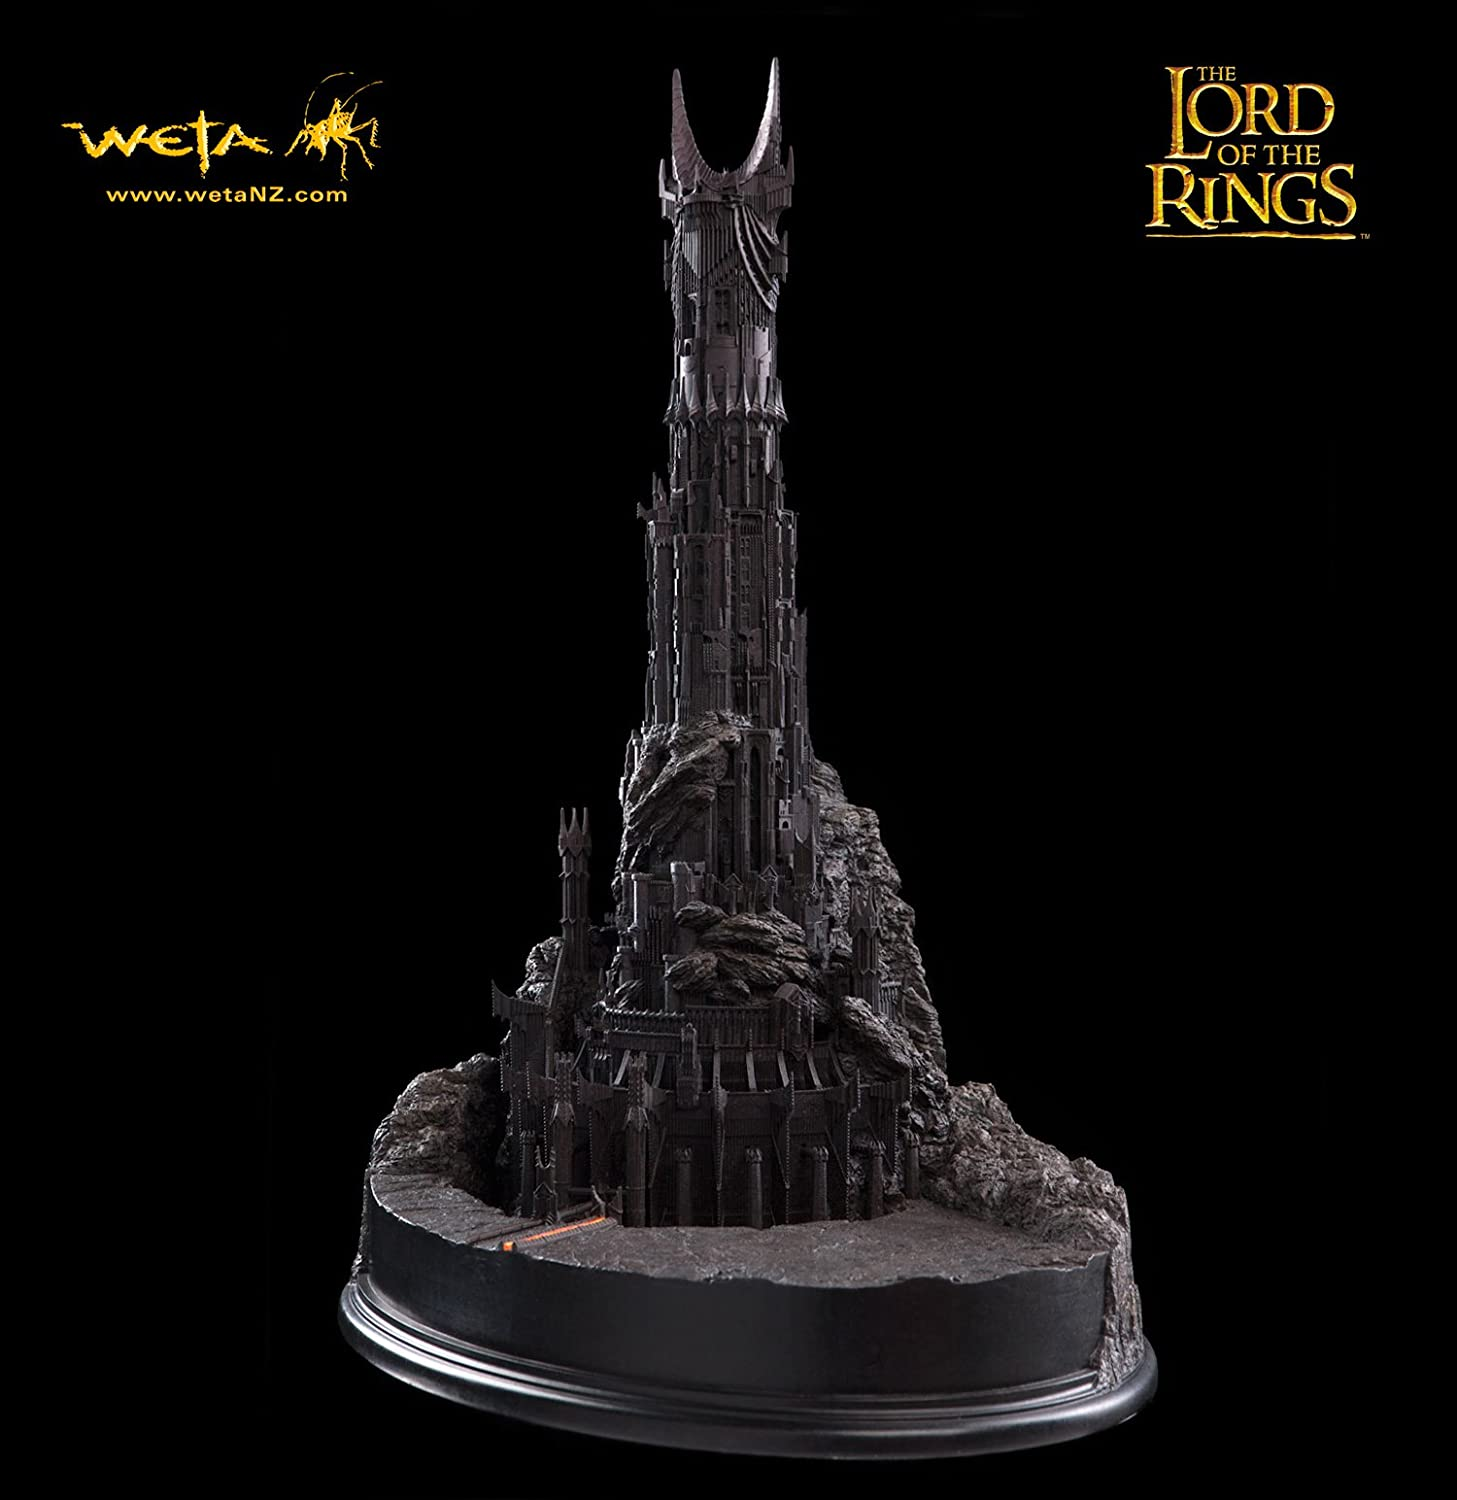 Barad-dûr - Fortress of Sauron - The Lord of the Rings Environment ...